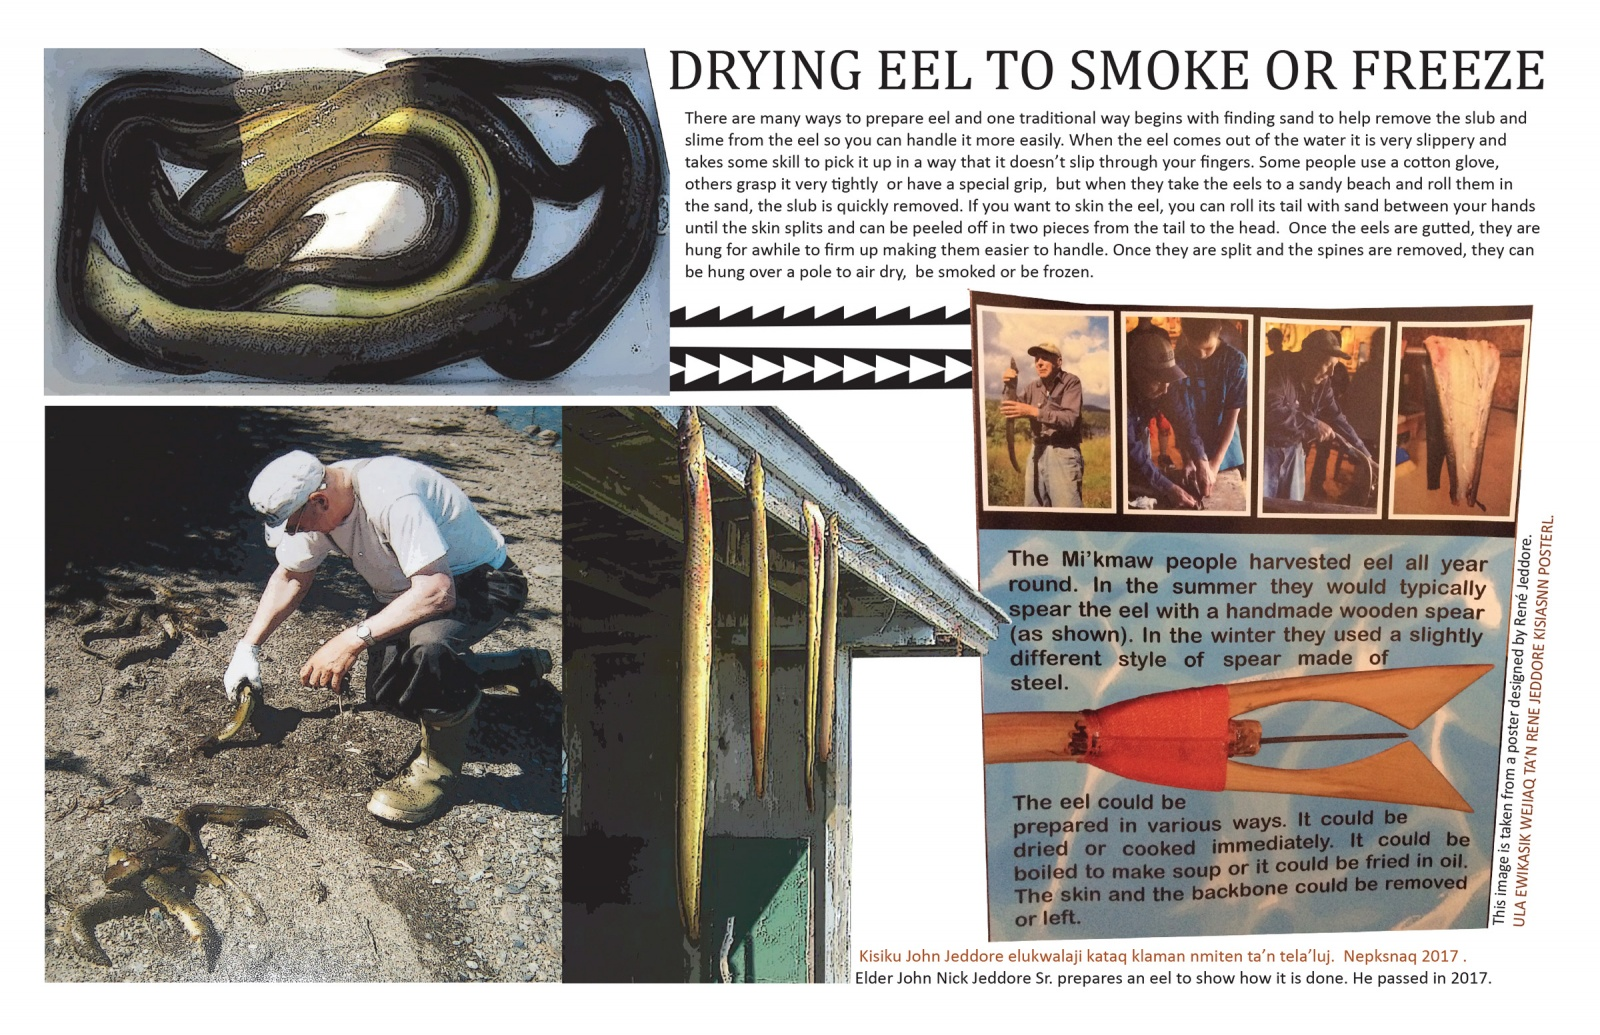 Drying Eel to Smoke or Freeze